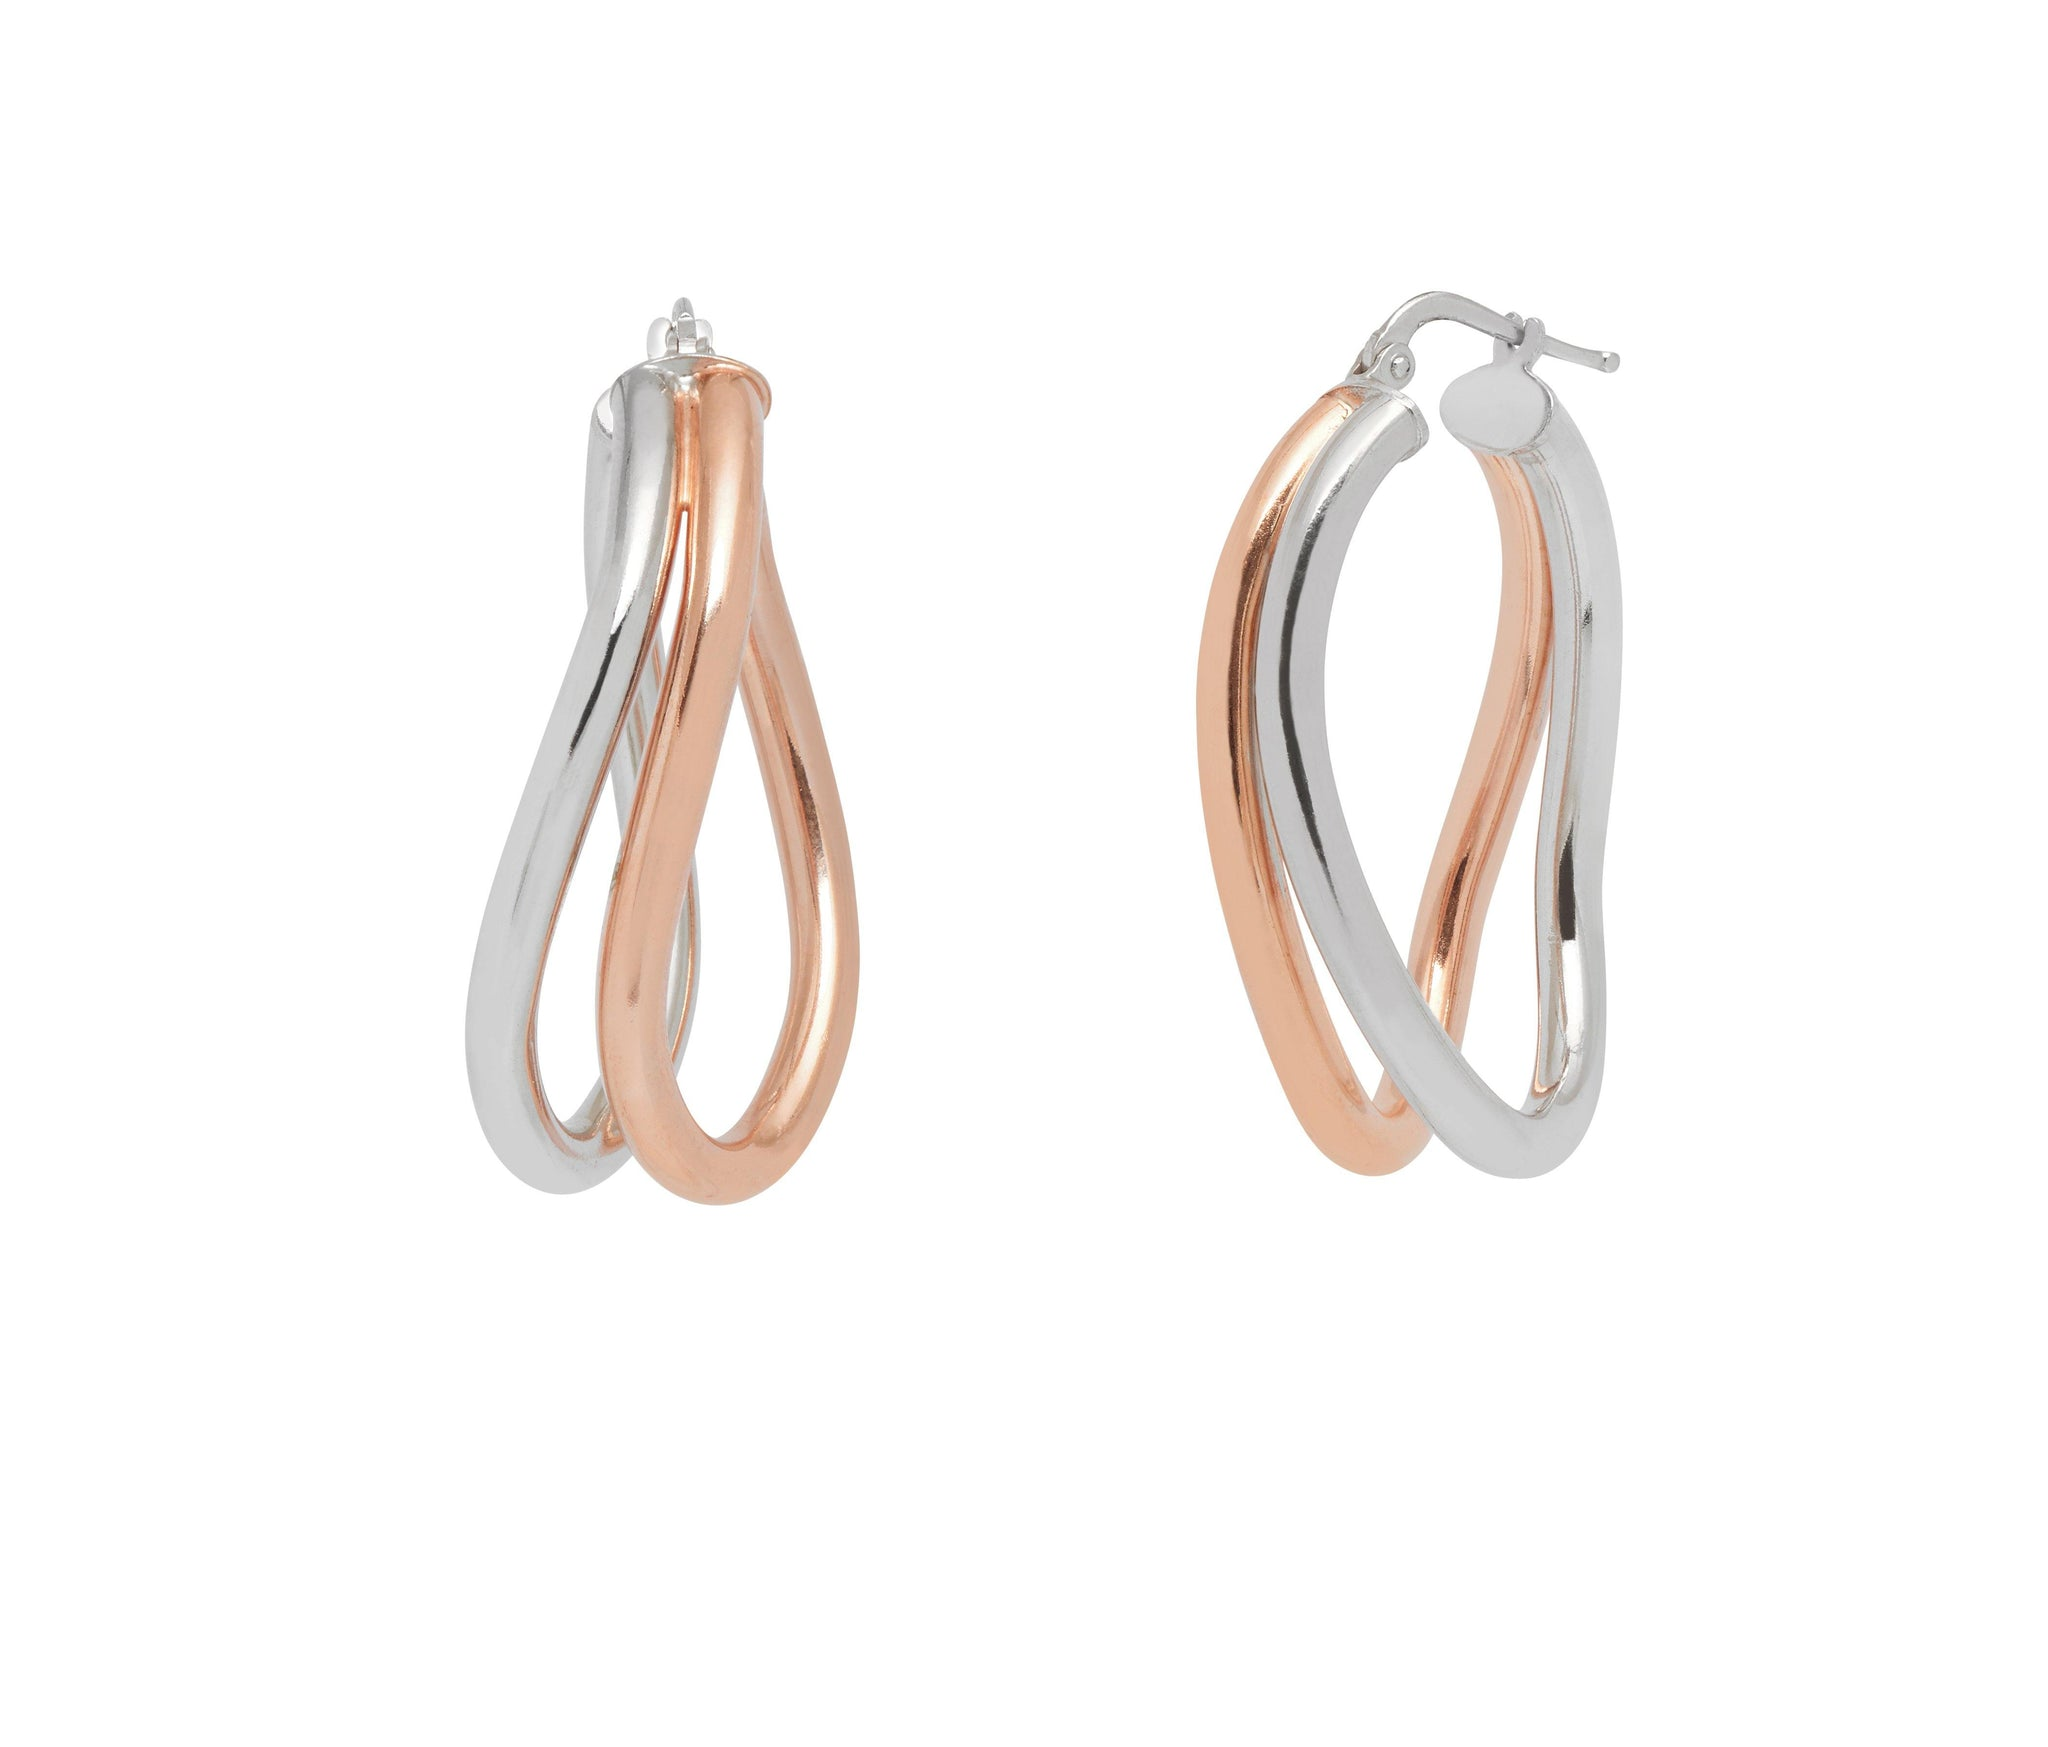 La DOPPIA WAVE Hoops - Silver & Rosegold - The Hoop Station 925 Sterling Silver Hoop Earrings Gold Huggies